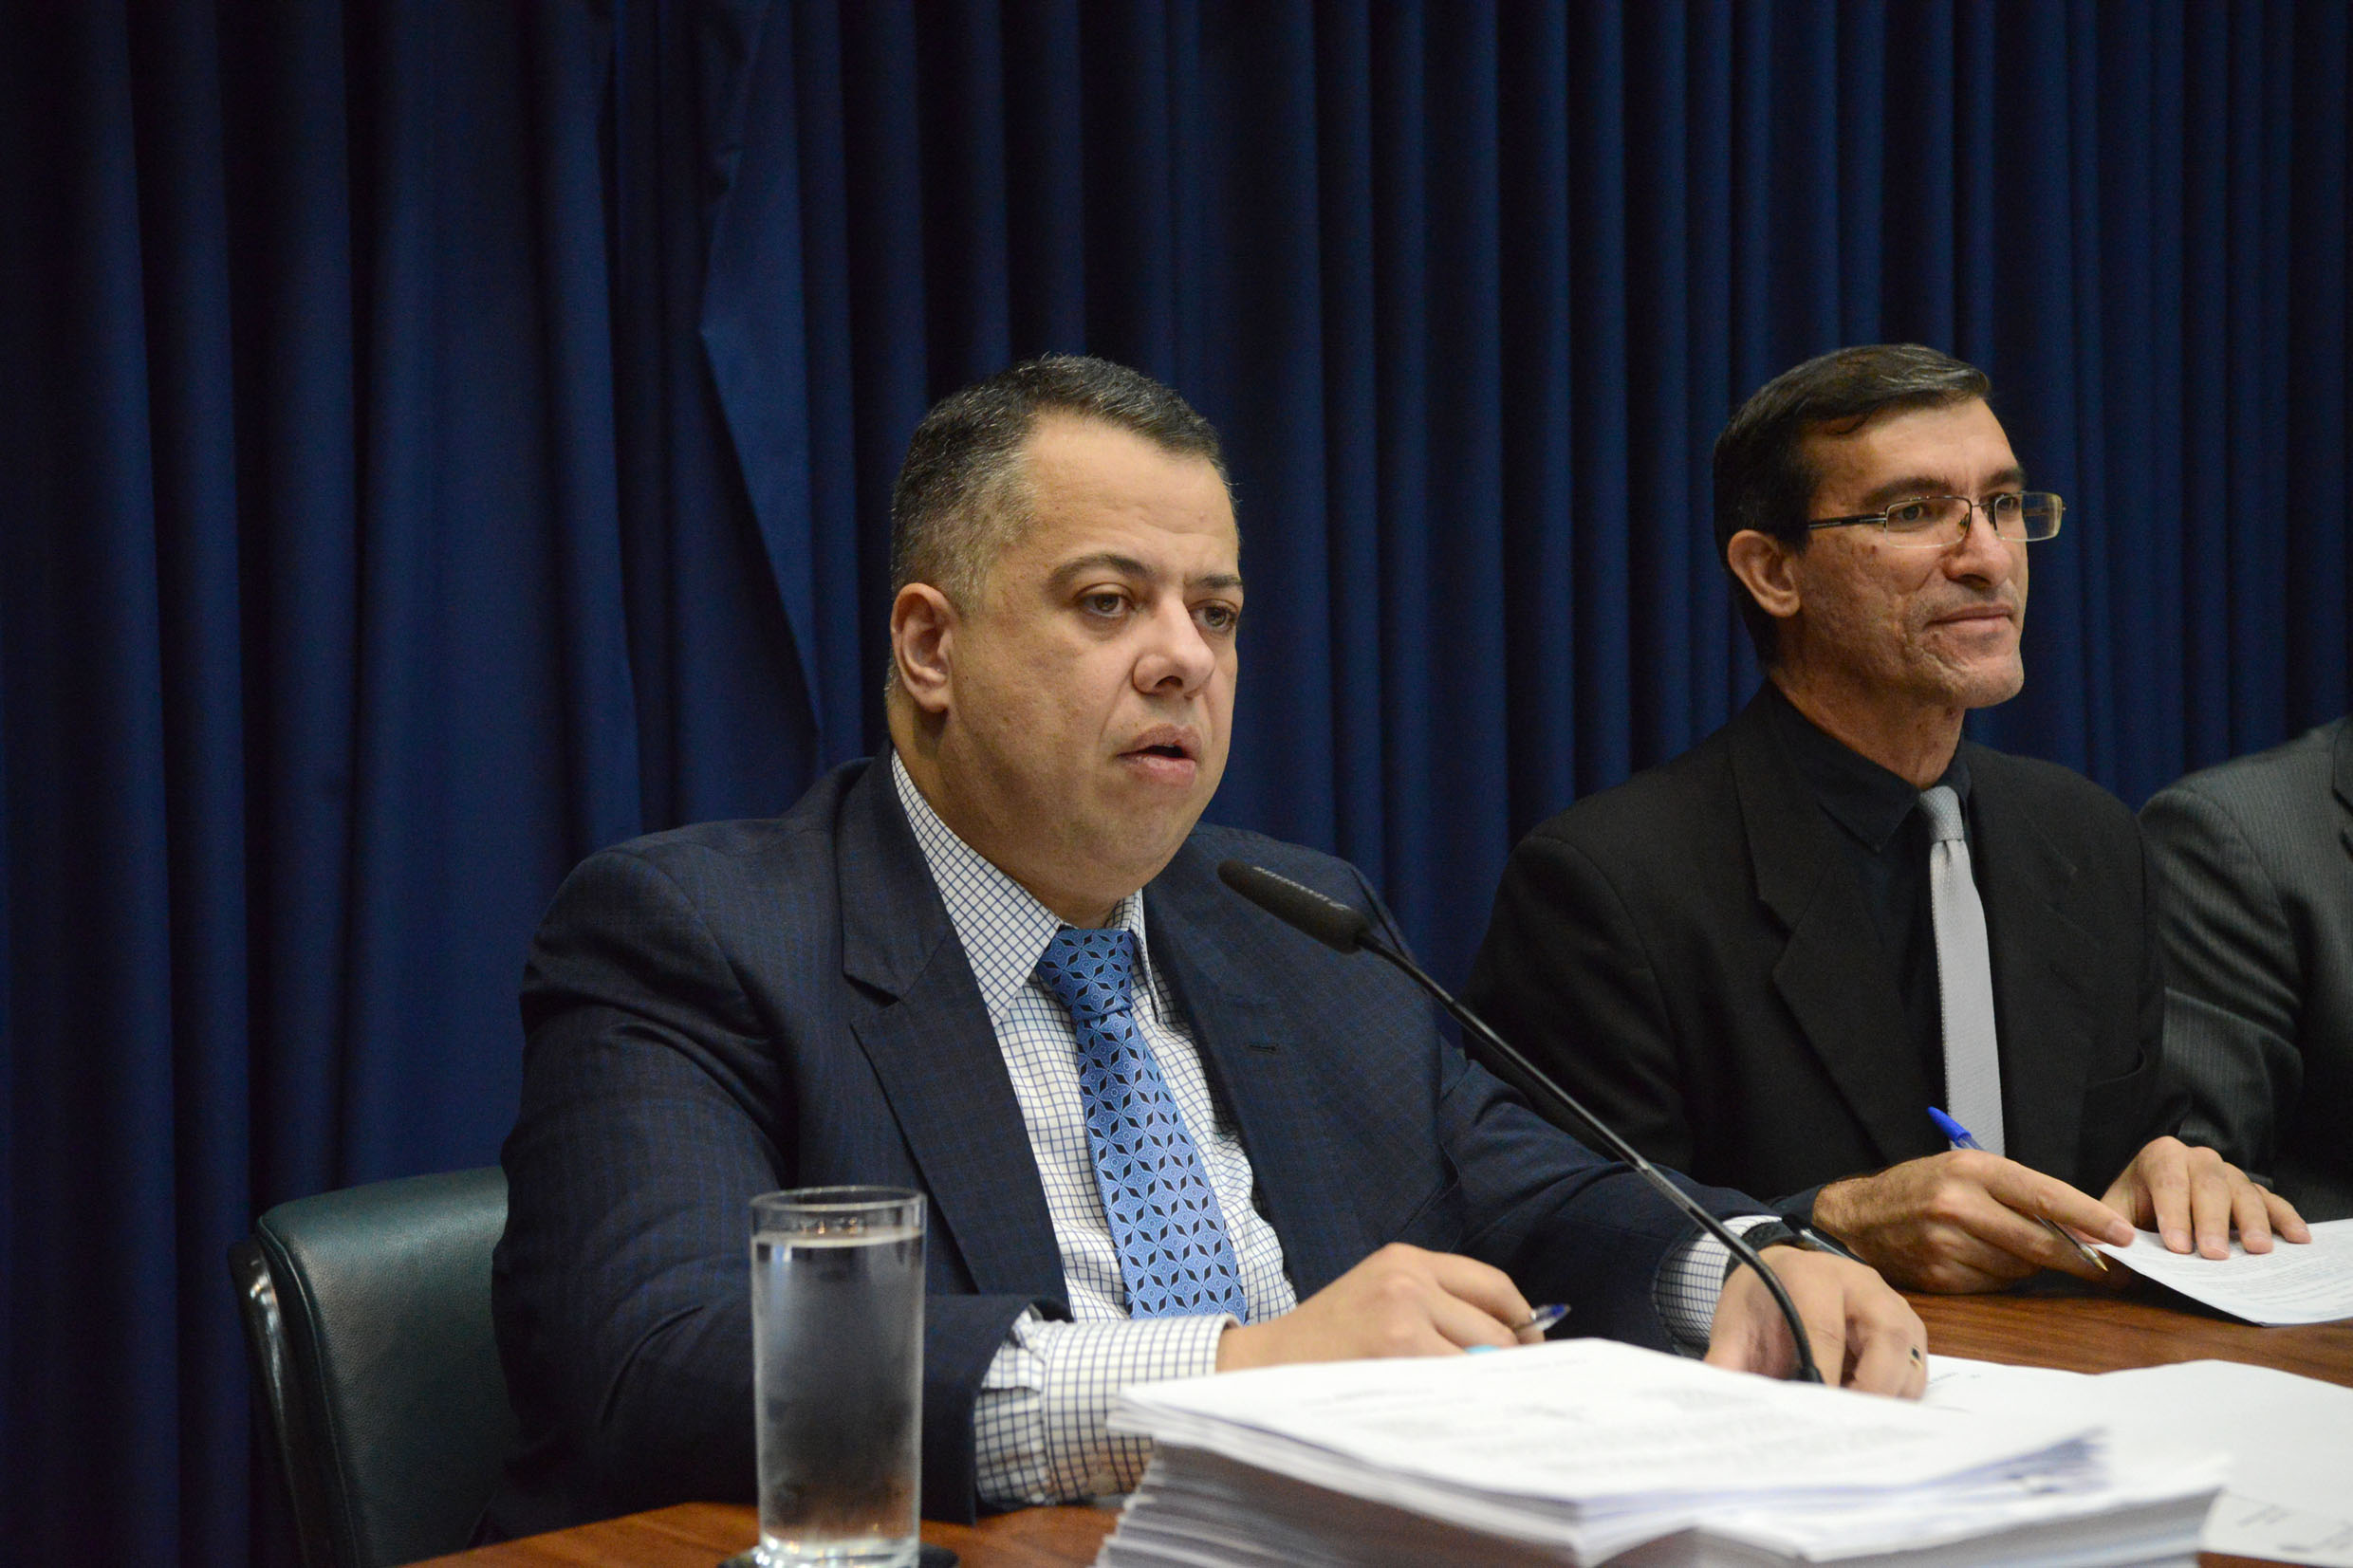 Wellington Moura preside a CPI<a style='float:right' href='https://www3.al.sp.gov.br/repositorio/noticia/N-10-2019/fg240927.jpg' target=_blank><img src='/_img/material-file-download-white.png' width='14px' alt='Clique para baixar a imagem'></a>